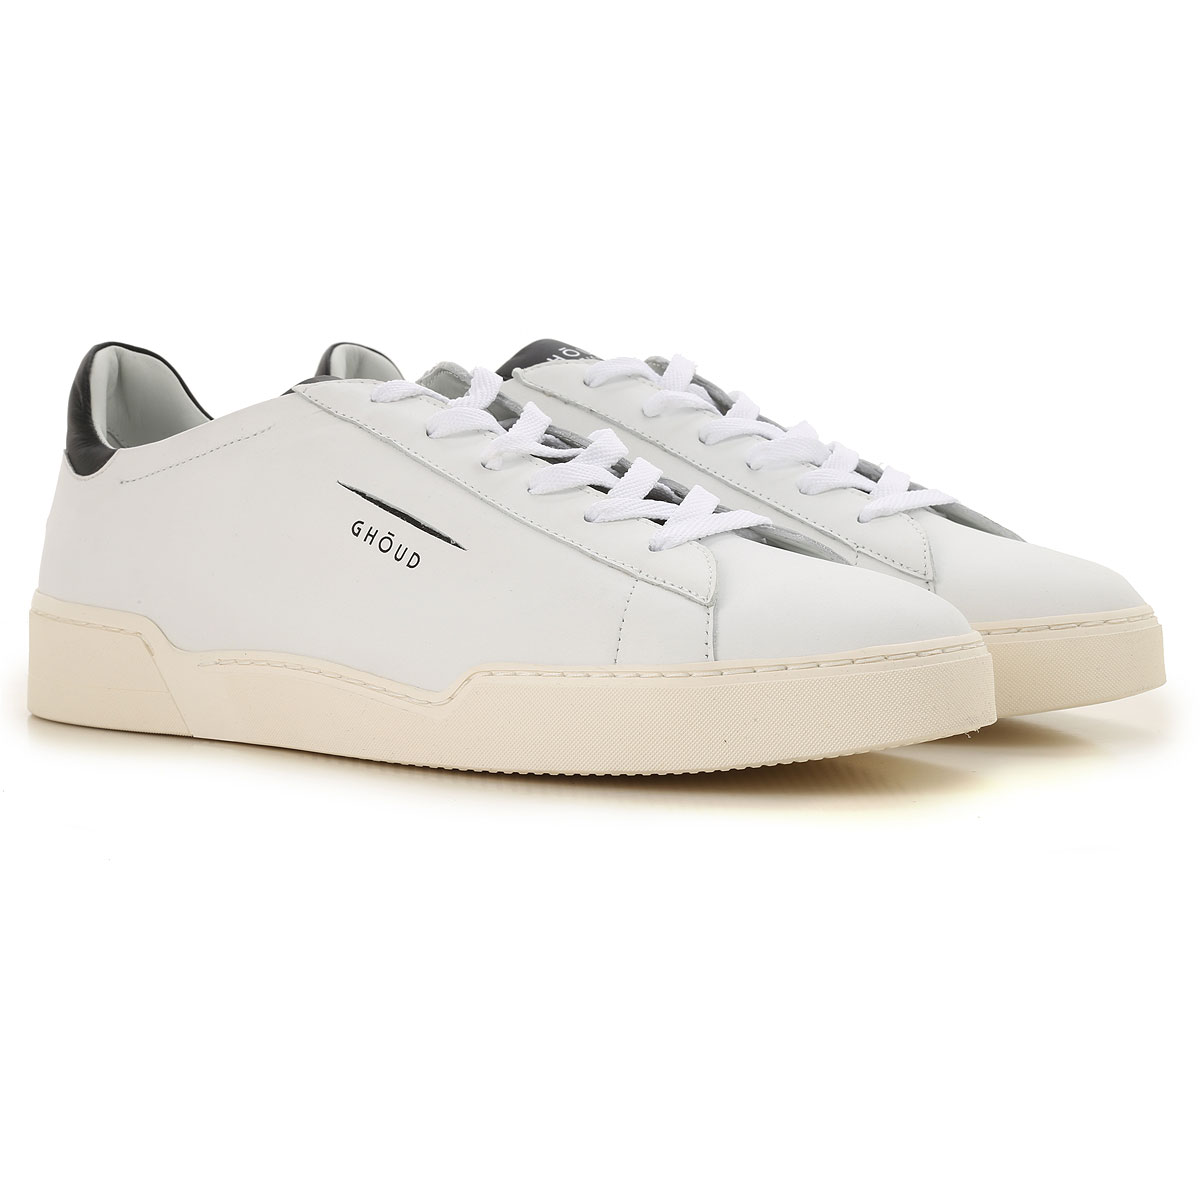 Image of Ghoud Sneakers for Men, White, Leather, 2017, 10 11.5 8